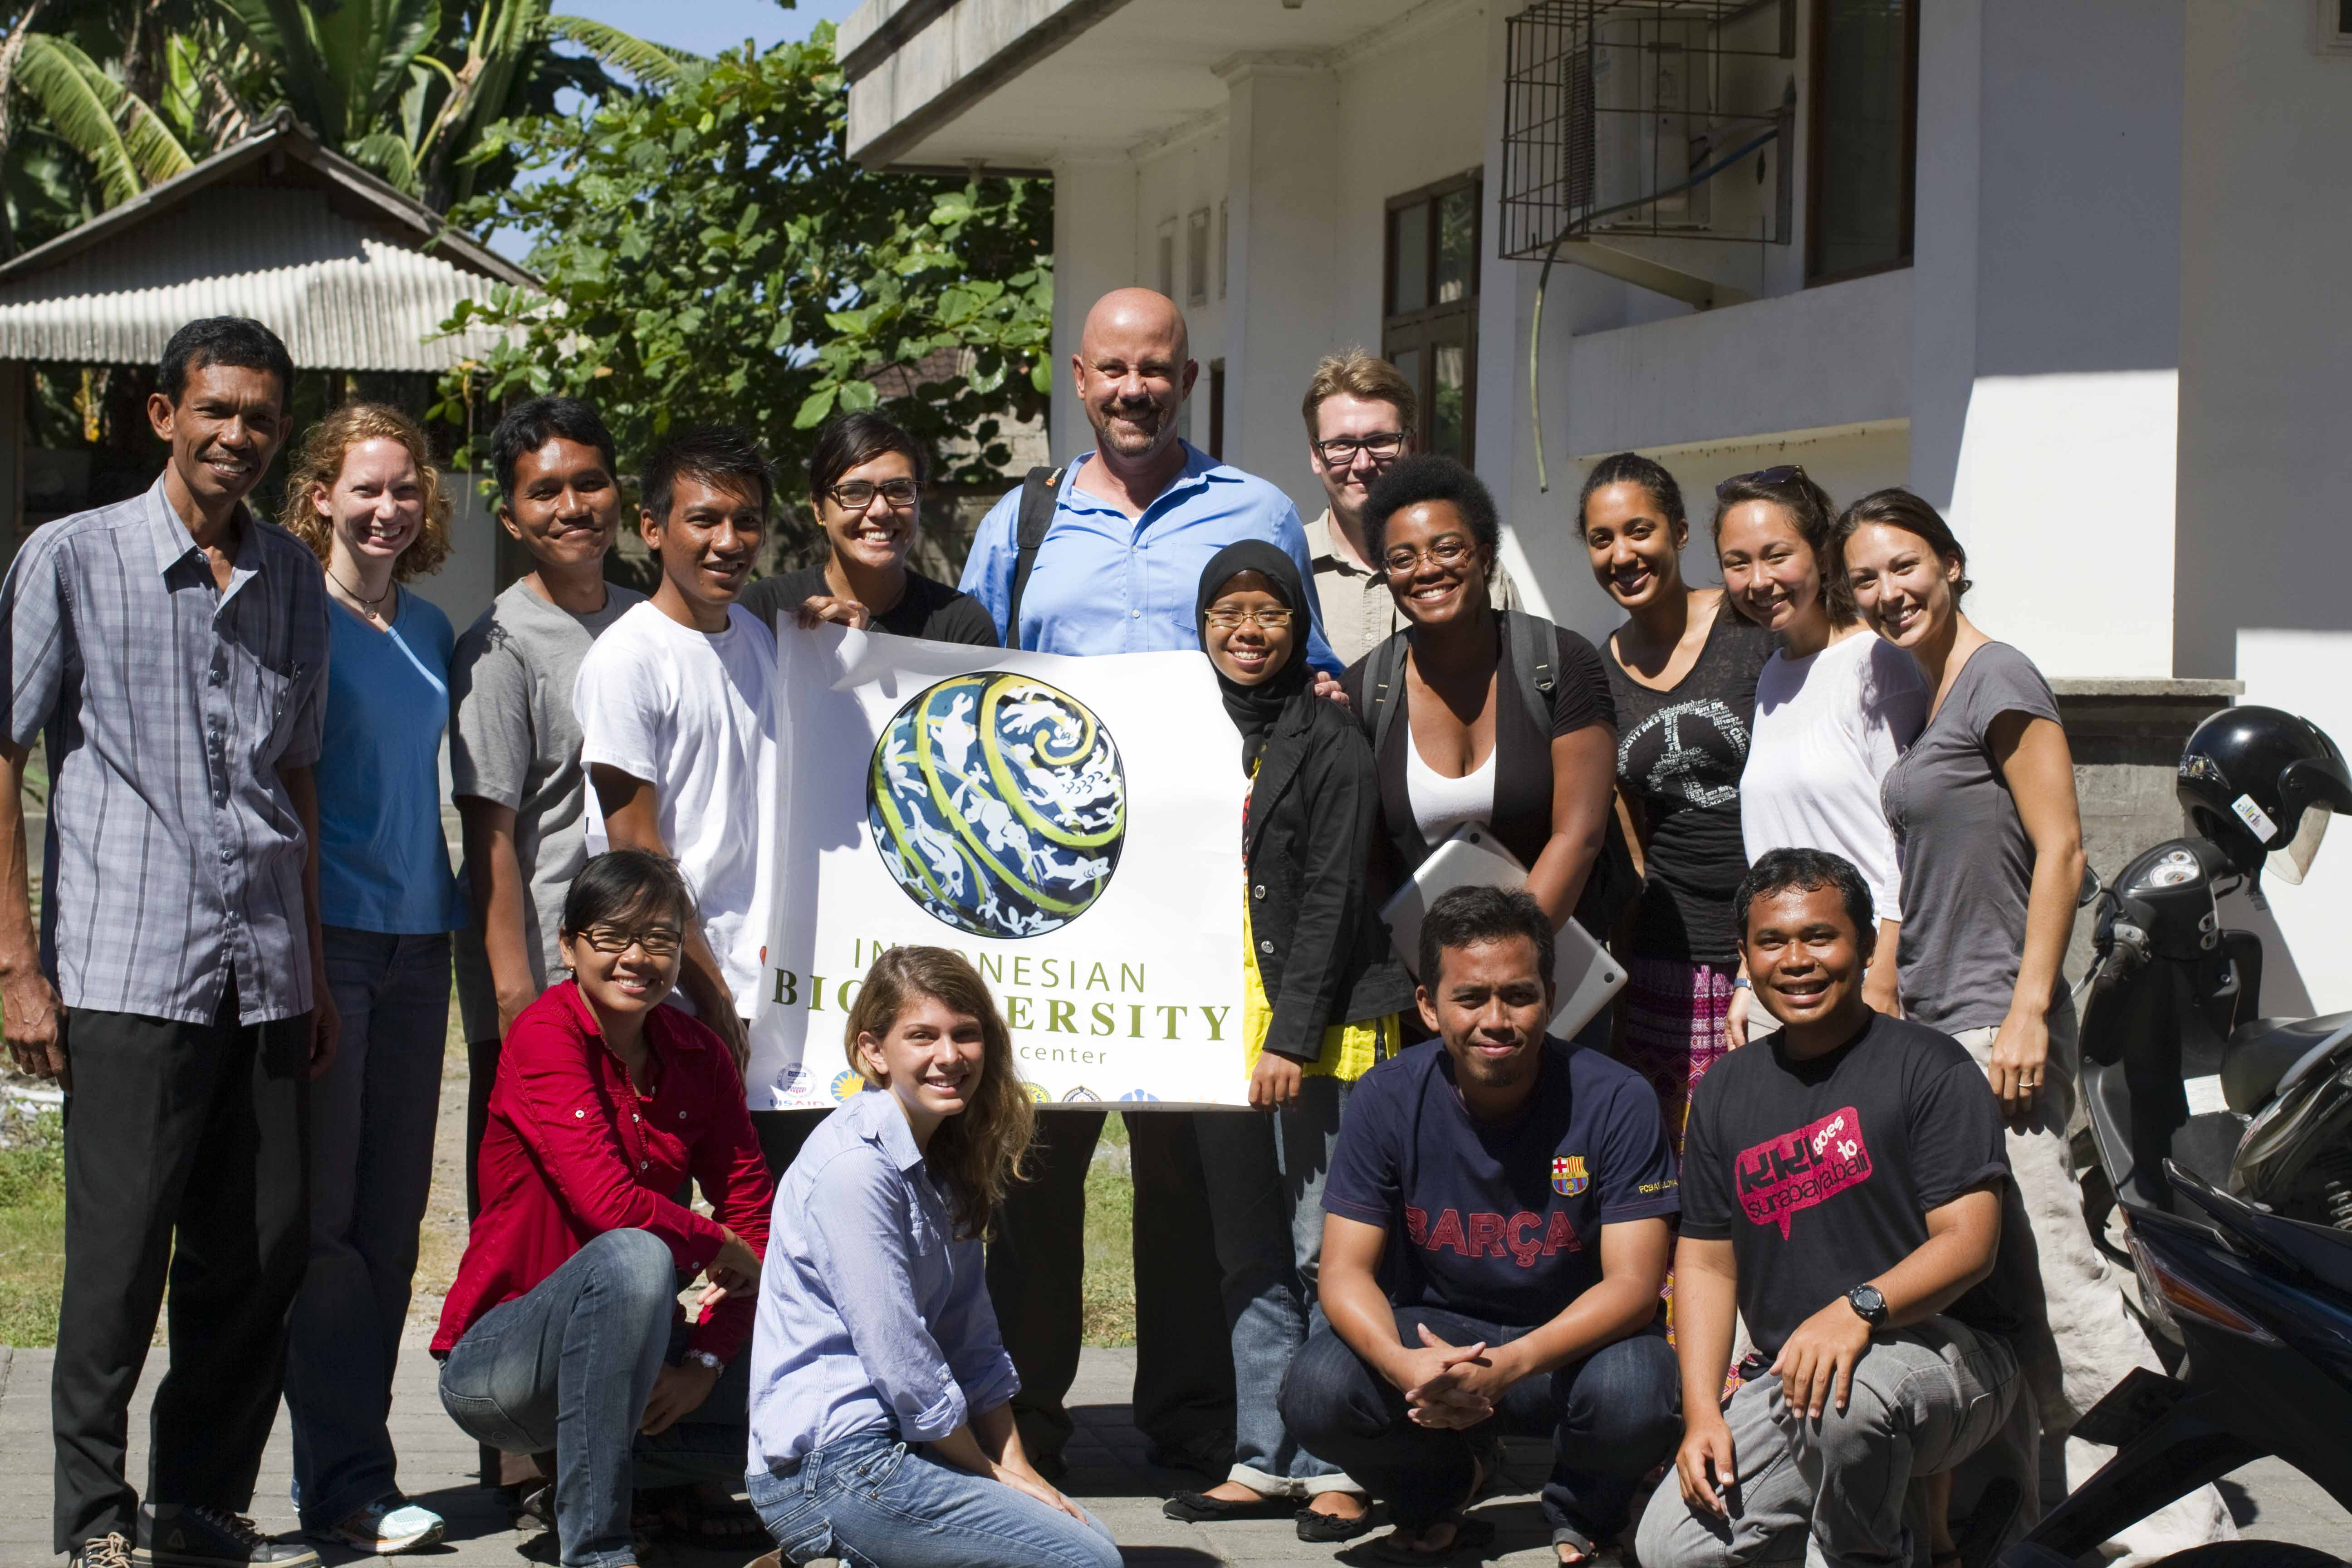 The 2012 Indonesian Biodiversity Research Center dive class stand in a group together<div class='credit'><strong>Credit:</strong> The 2012 Indonesian Biodiversity Research Center dive class stand in a group together</div>